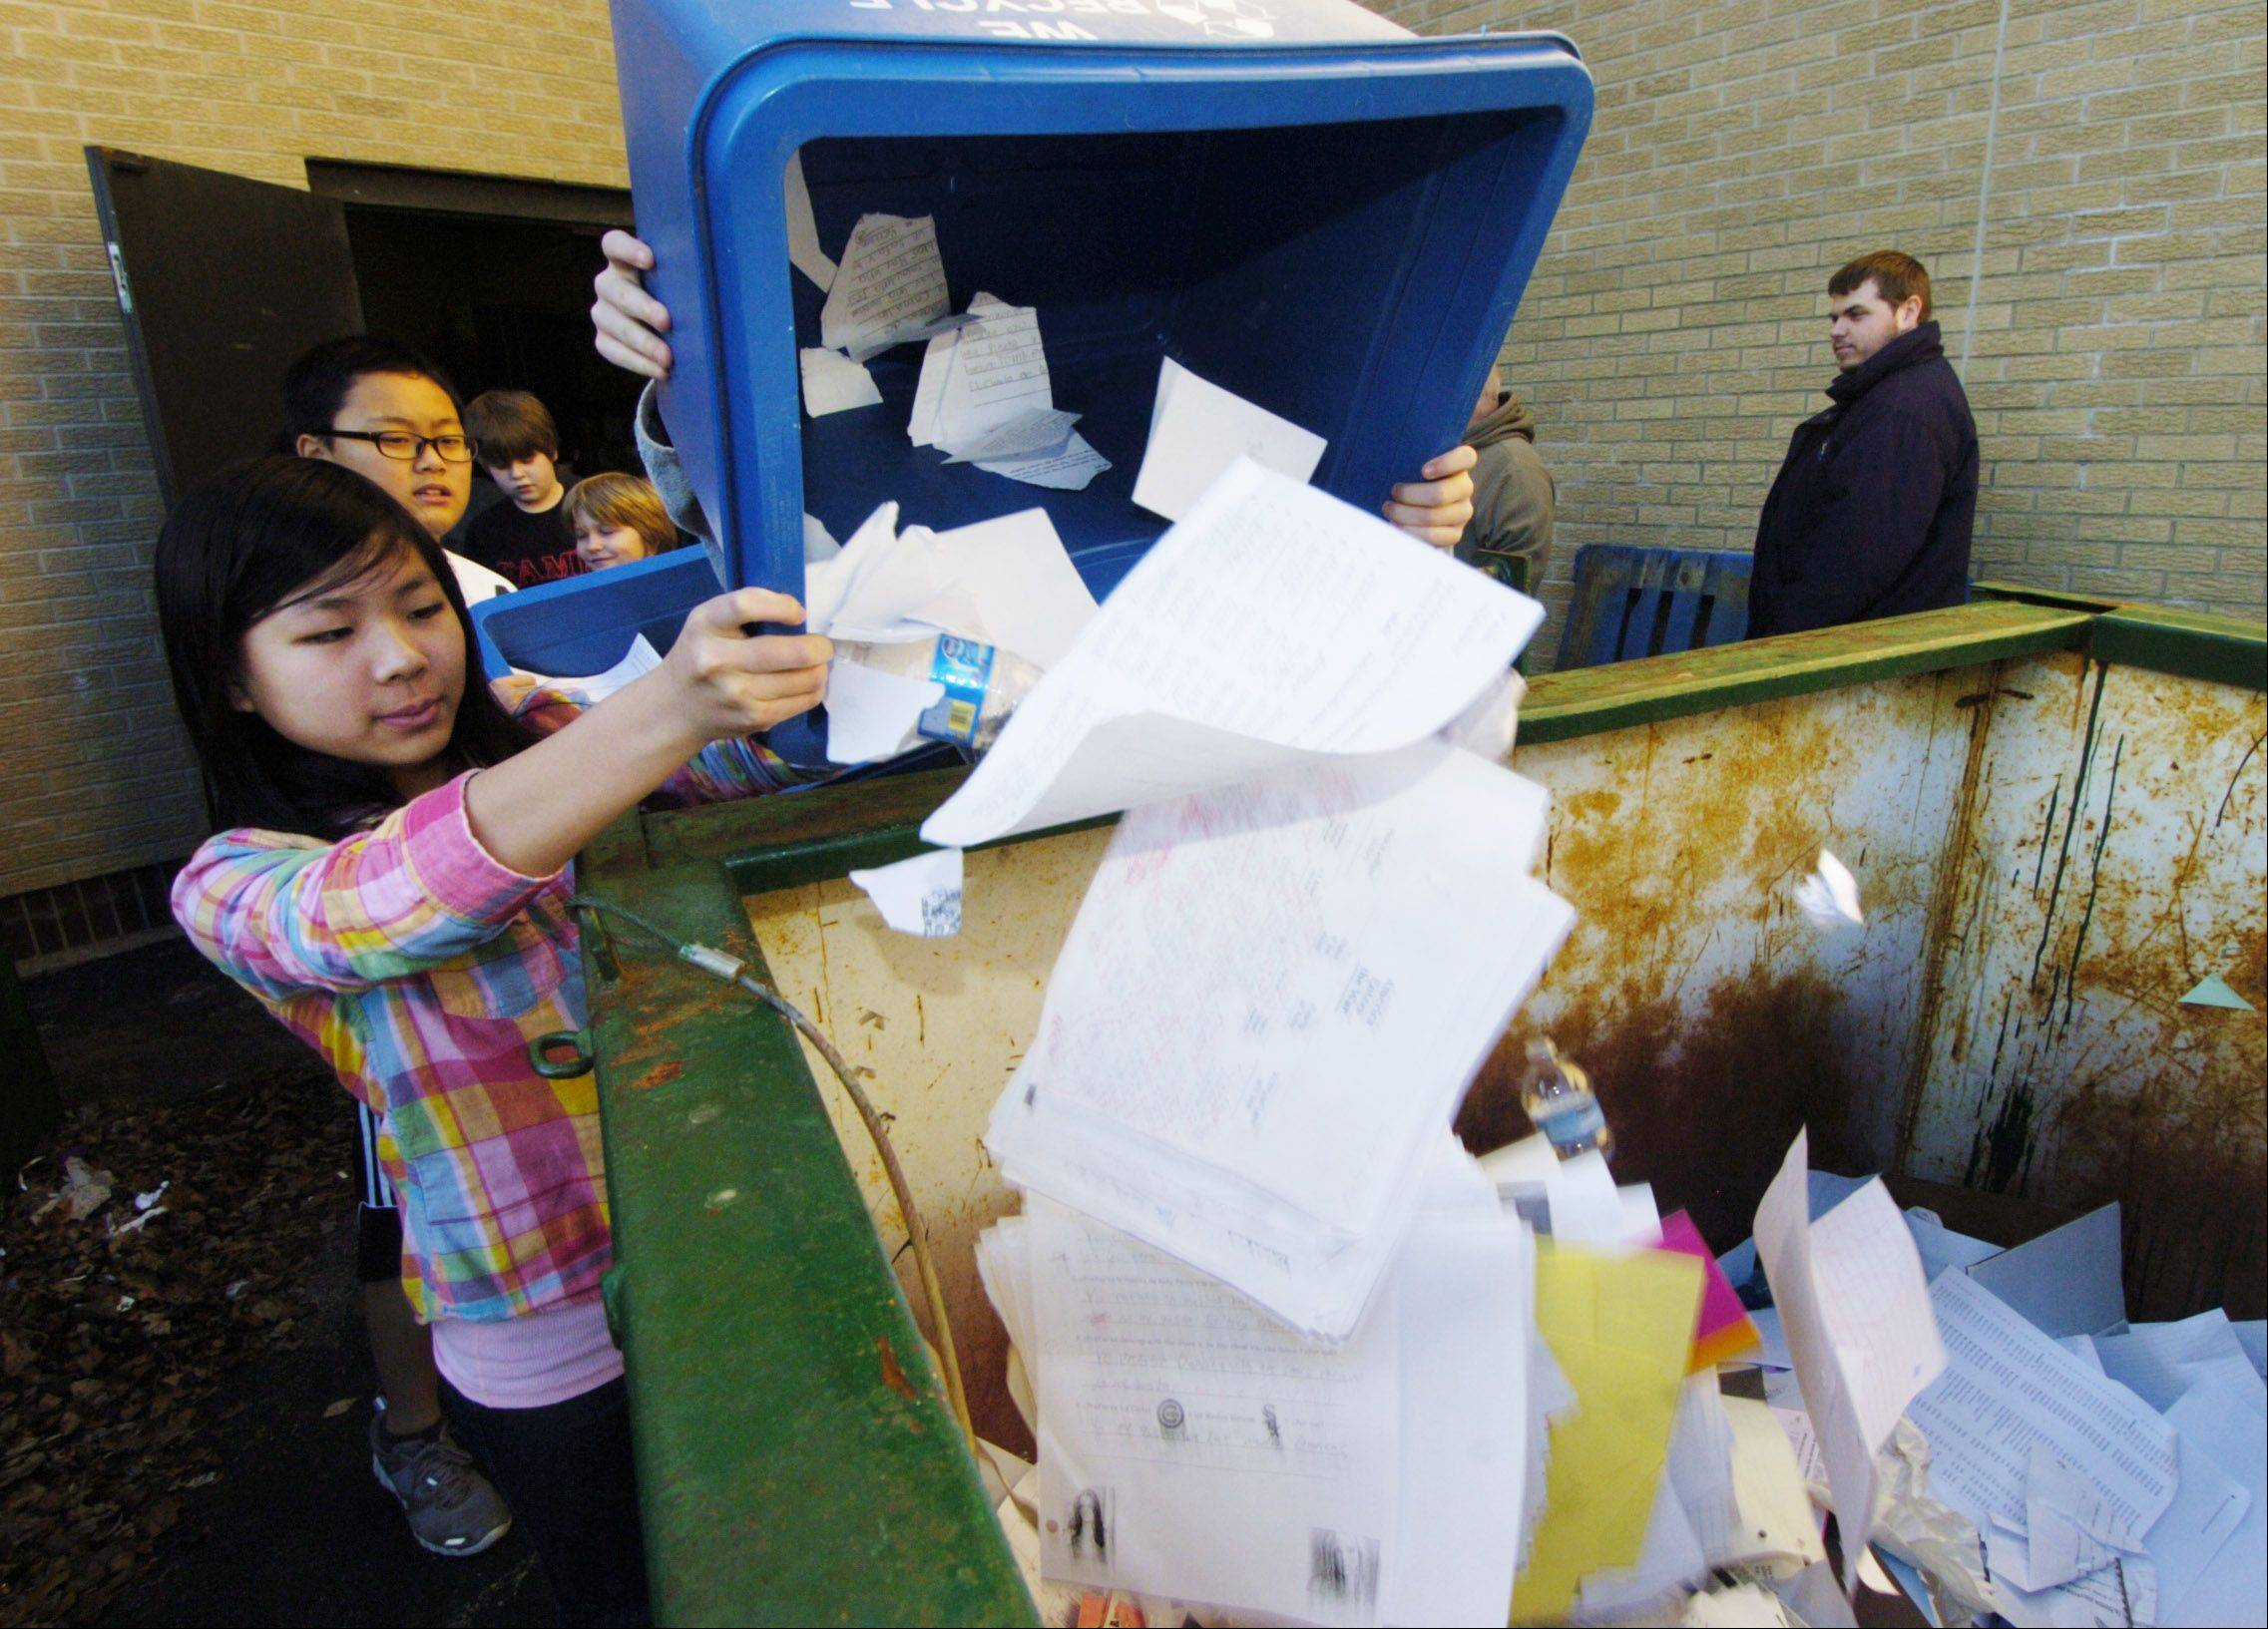 JOE LEWNARD/jlewnard@dailyherald.comJasmine Mui is among a group of sixth-graders depositing material for recycling, which is part of a yearlong service learning project at Field Middle School in Northbrook.